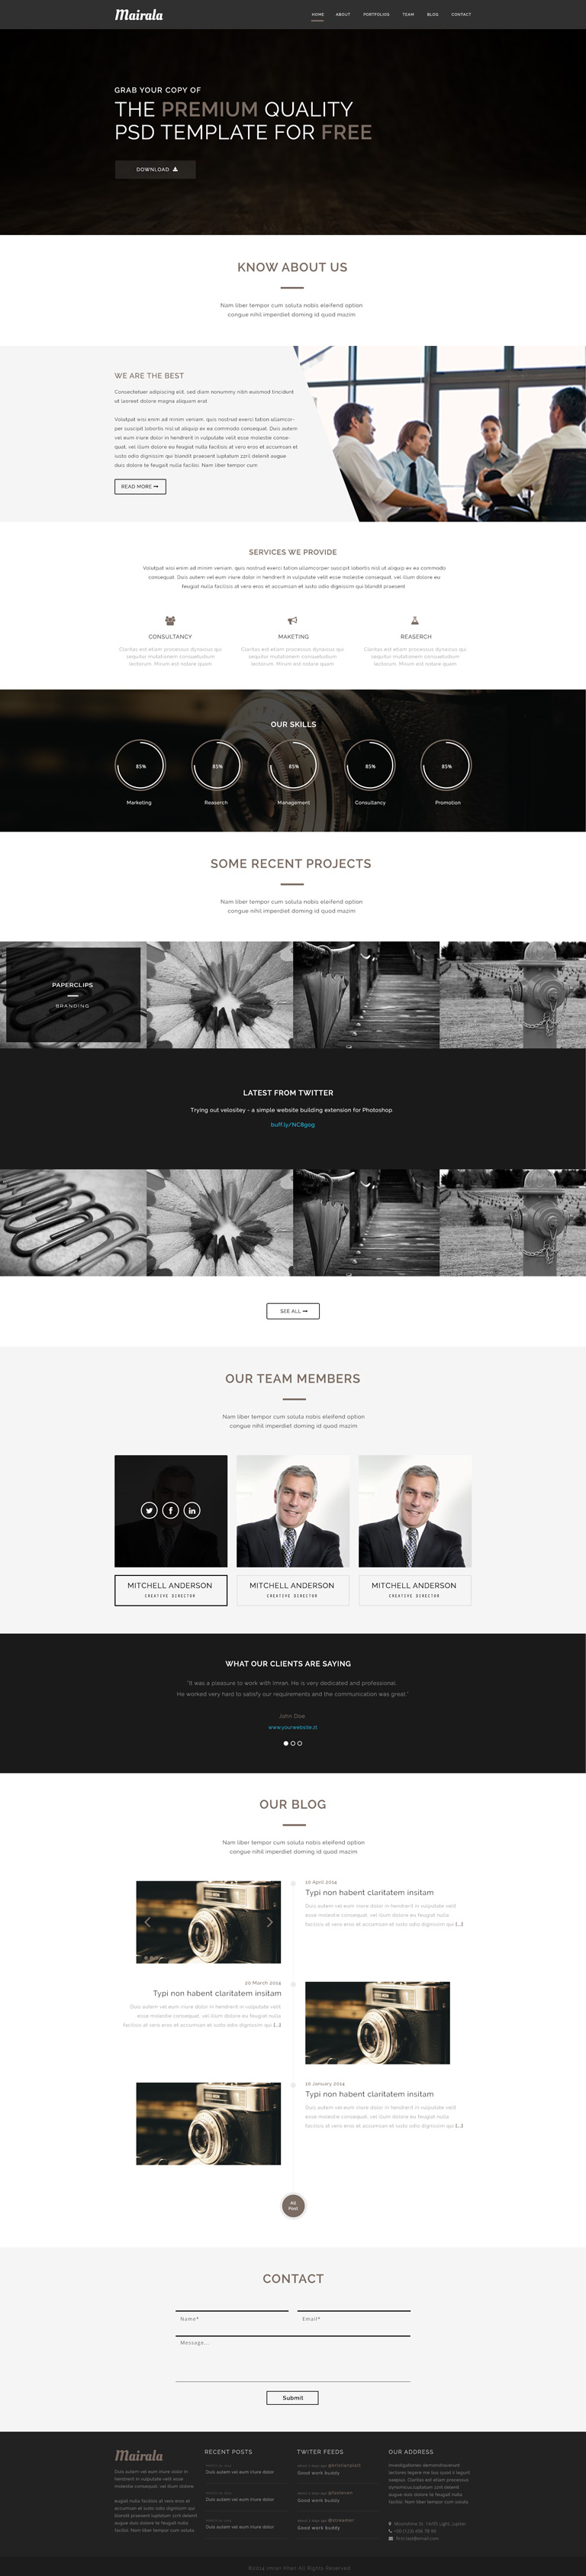 corporate one page website template. Black Bedroom Furniture Sets. Home Design Ideas